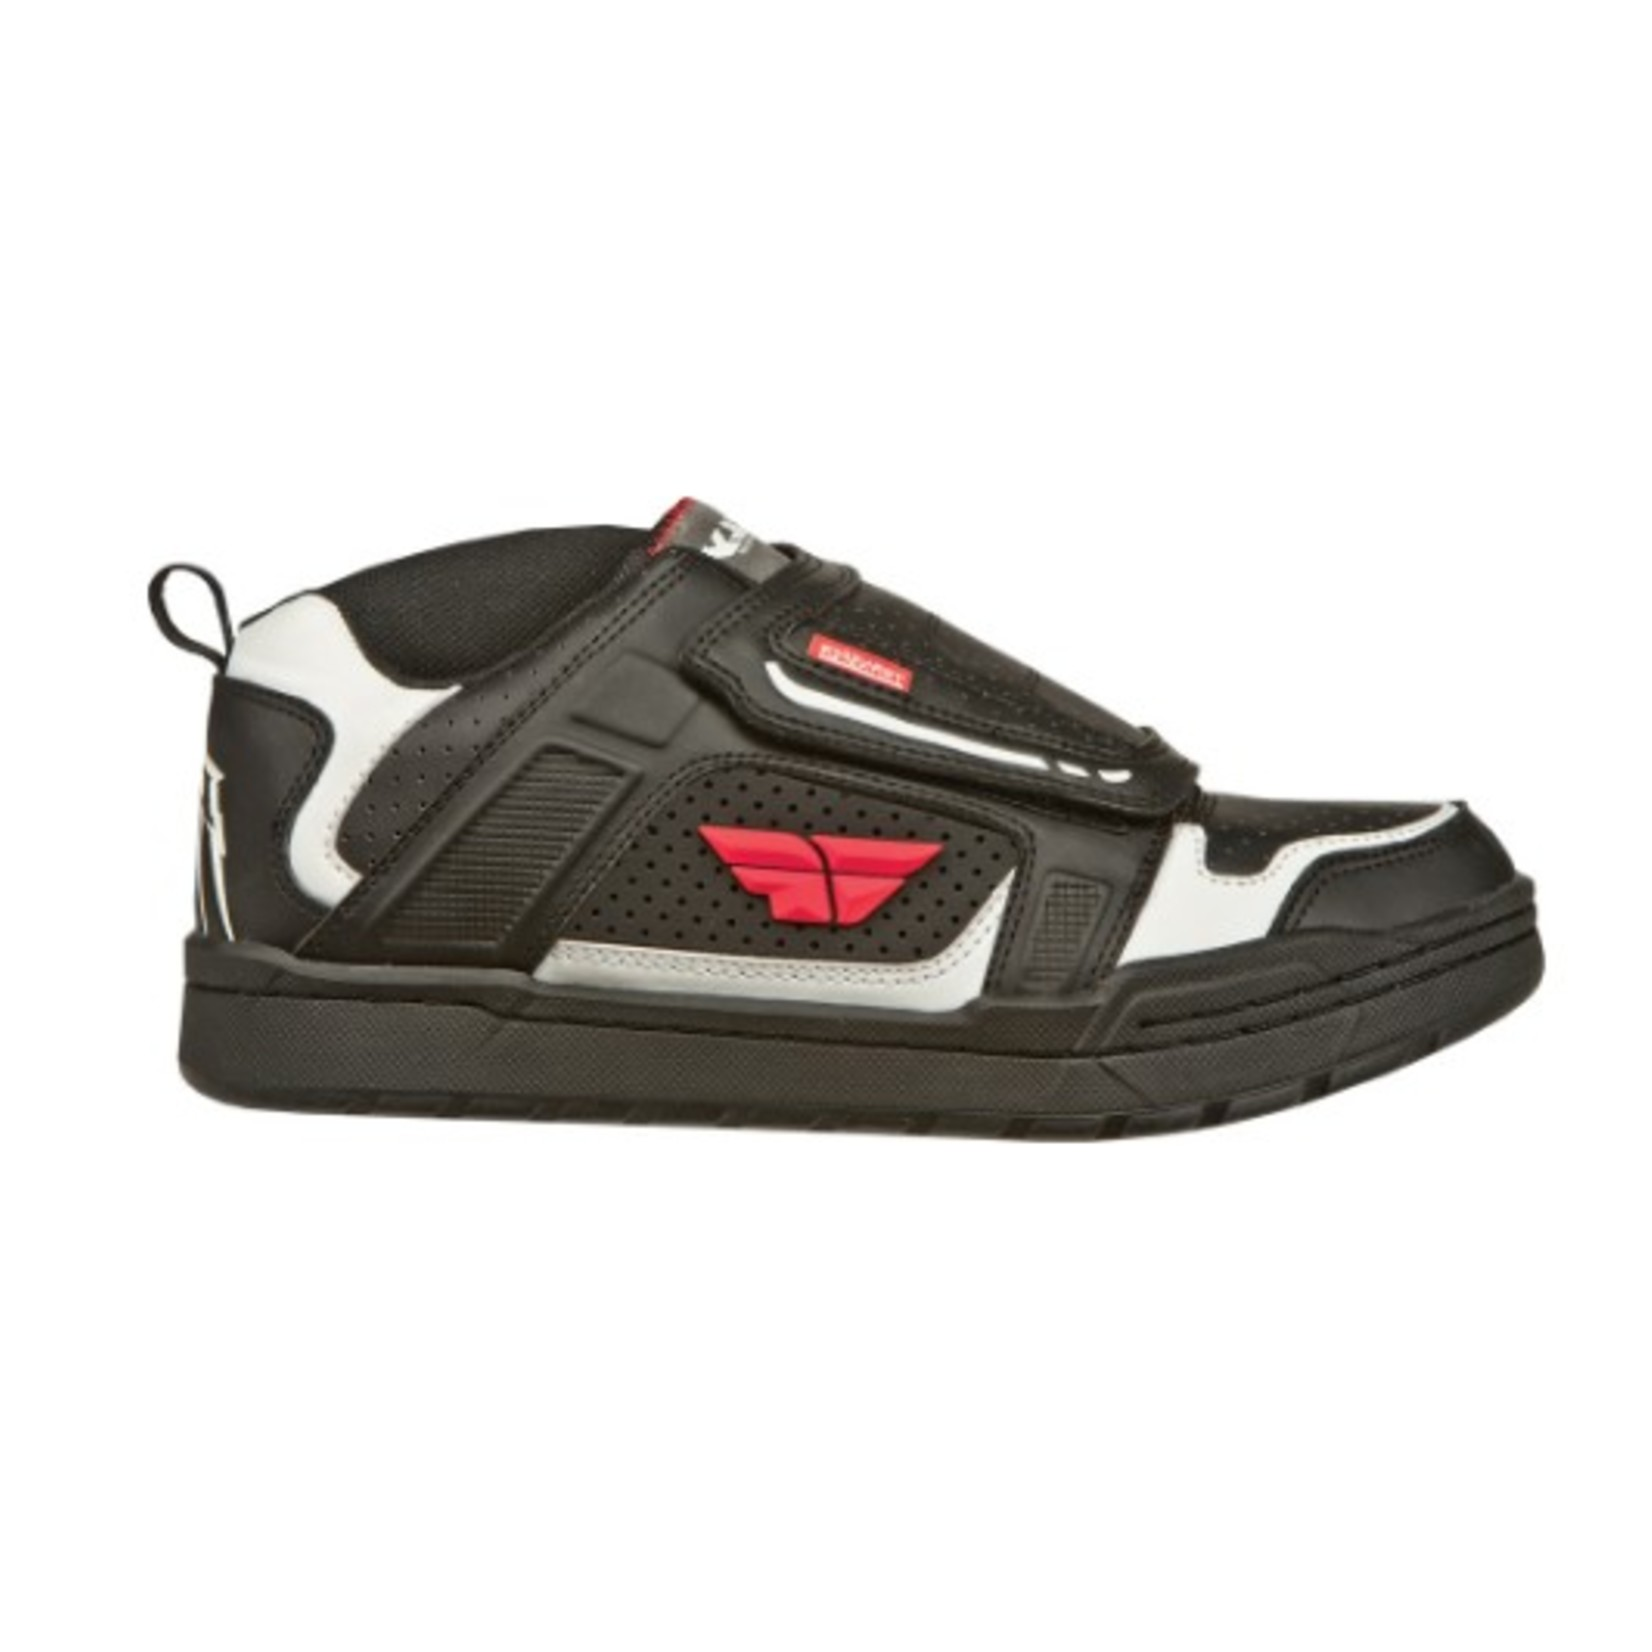 Fly Racing Fly Transfer Shoe Black/White/Red